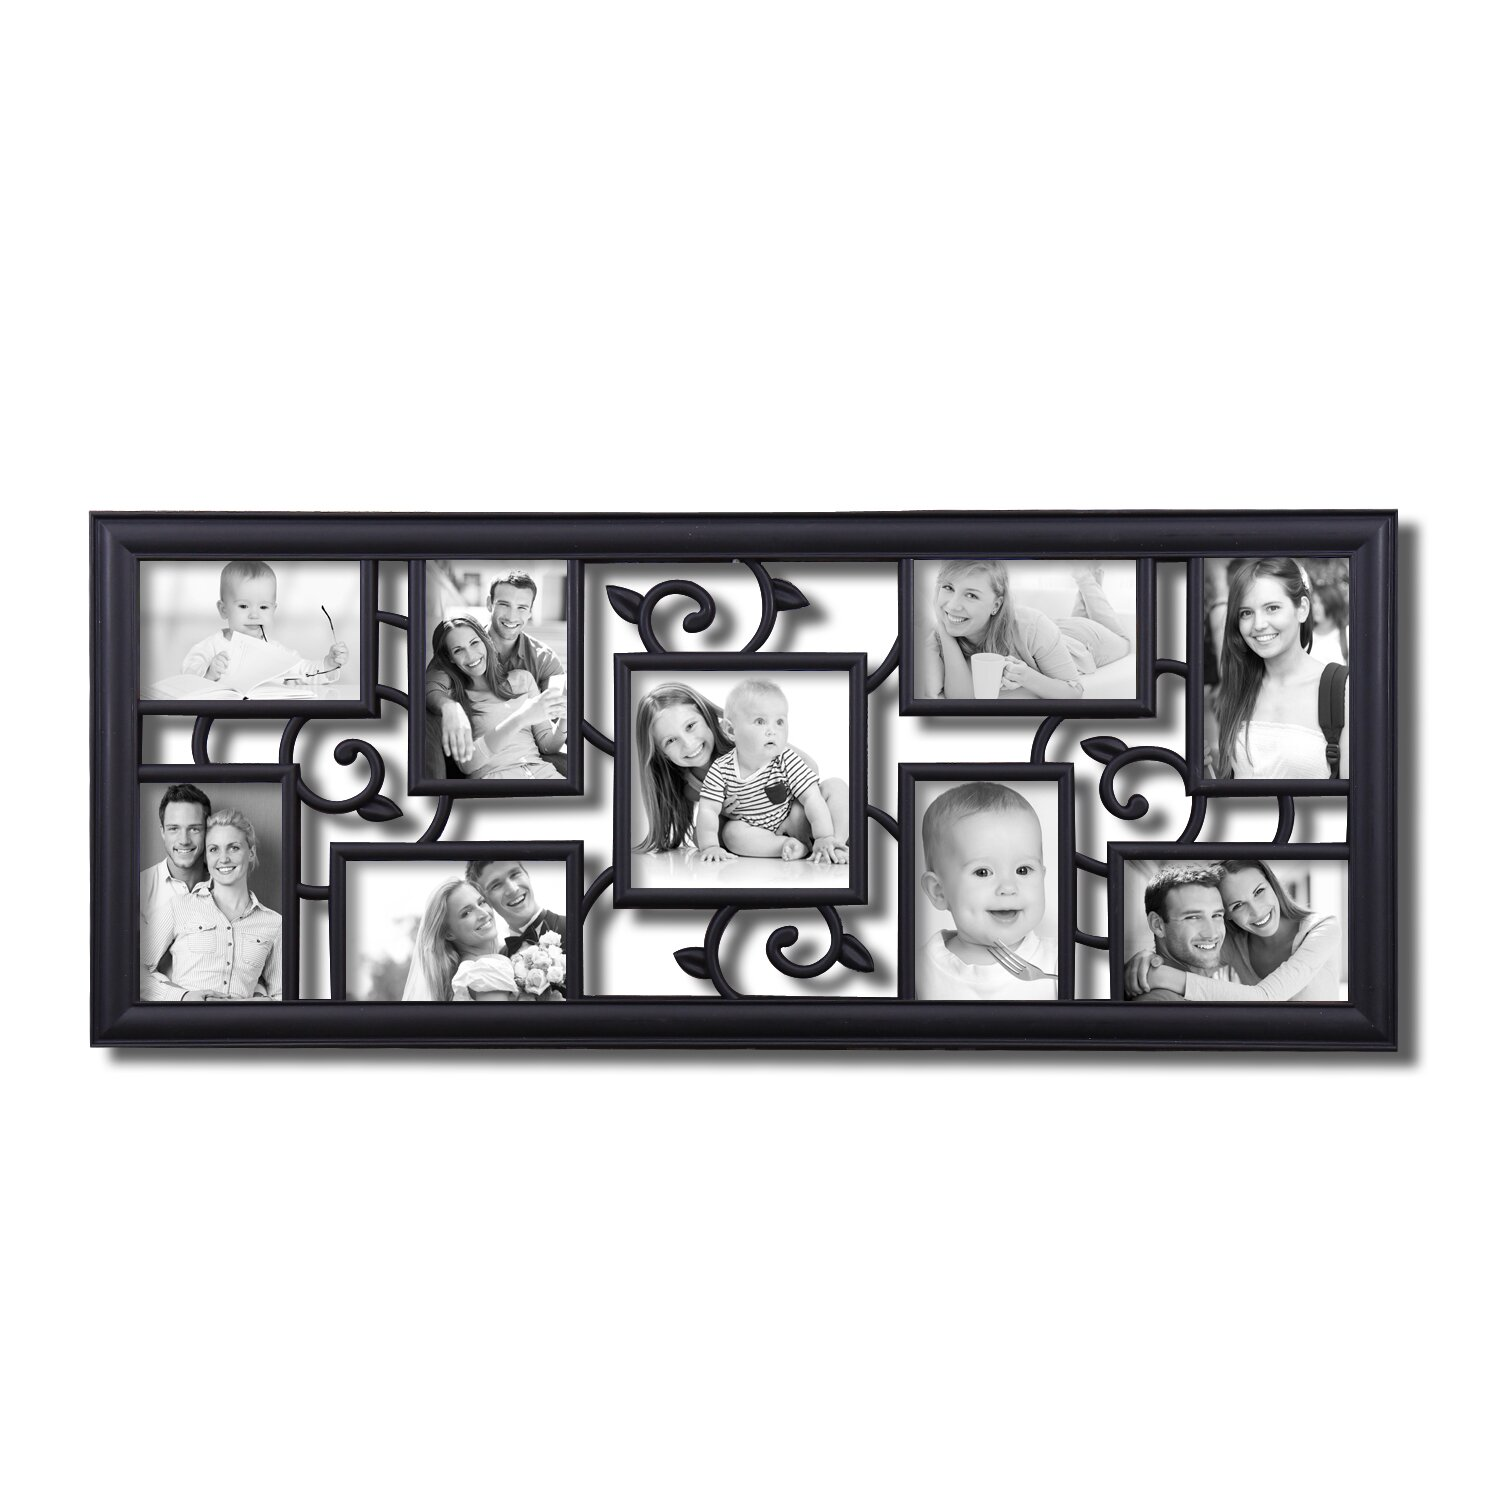 adecotrading 9 opening decorative filigree wall hanging collage picture frame reviews wayfair. Black Bedroom Furniture Sets. Home Design Ideas